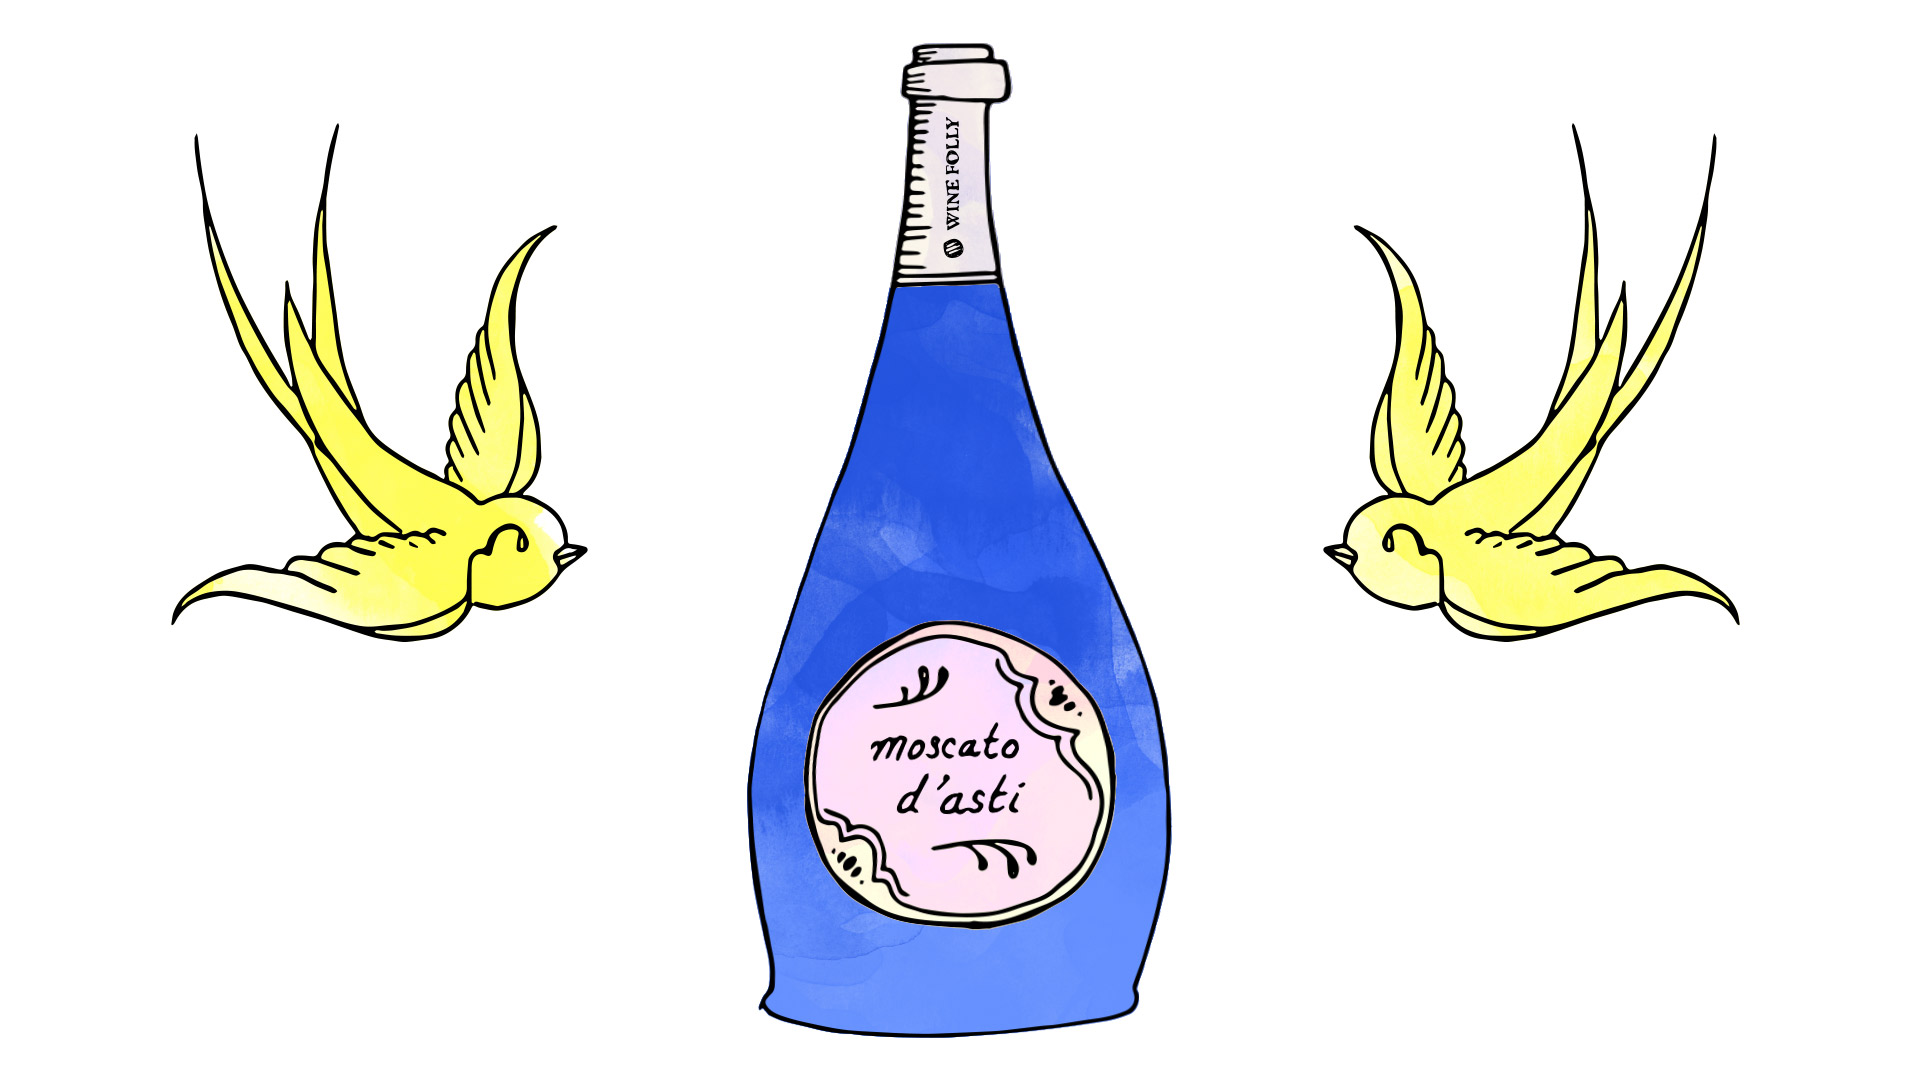 Moscato d'Asti Blue Bottle Illustration with Sparrow Tattoo by Wine Folly.